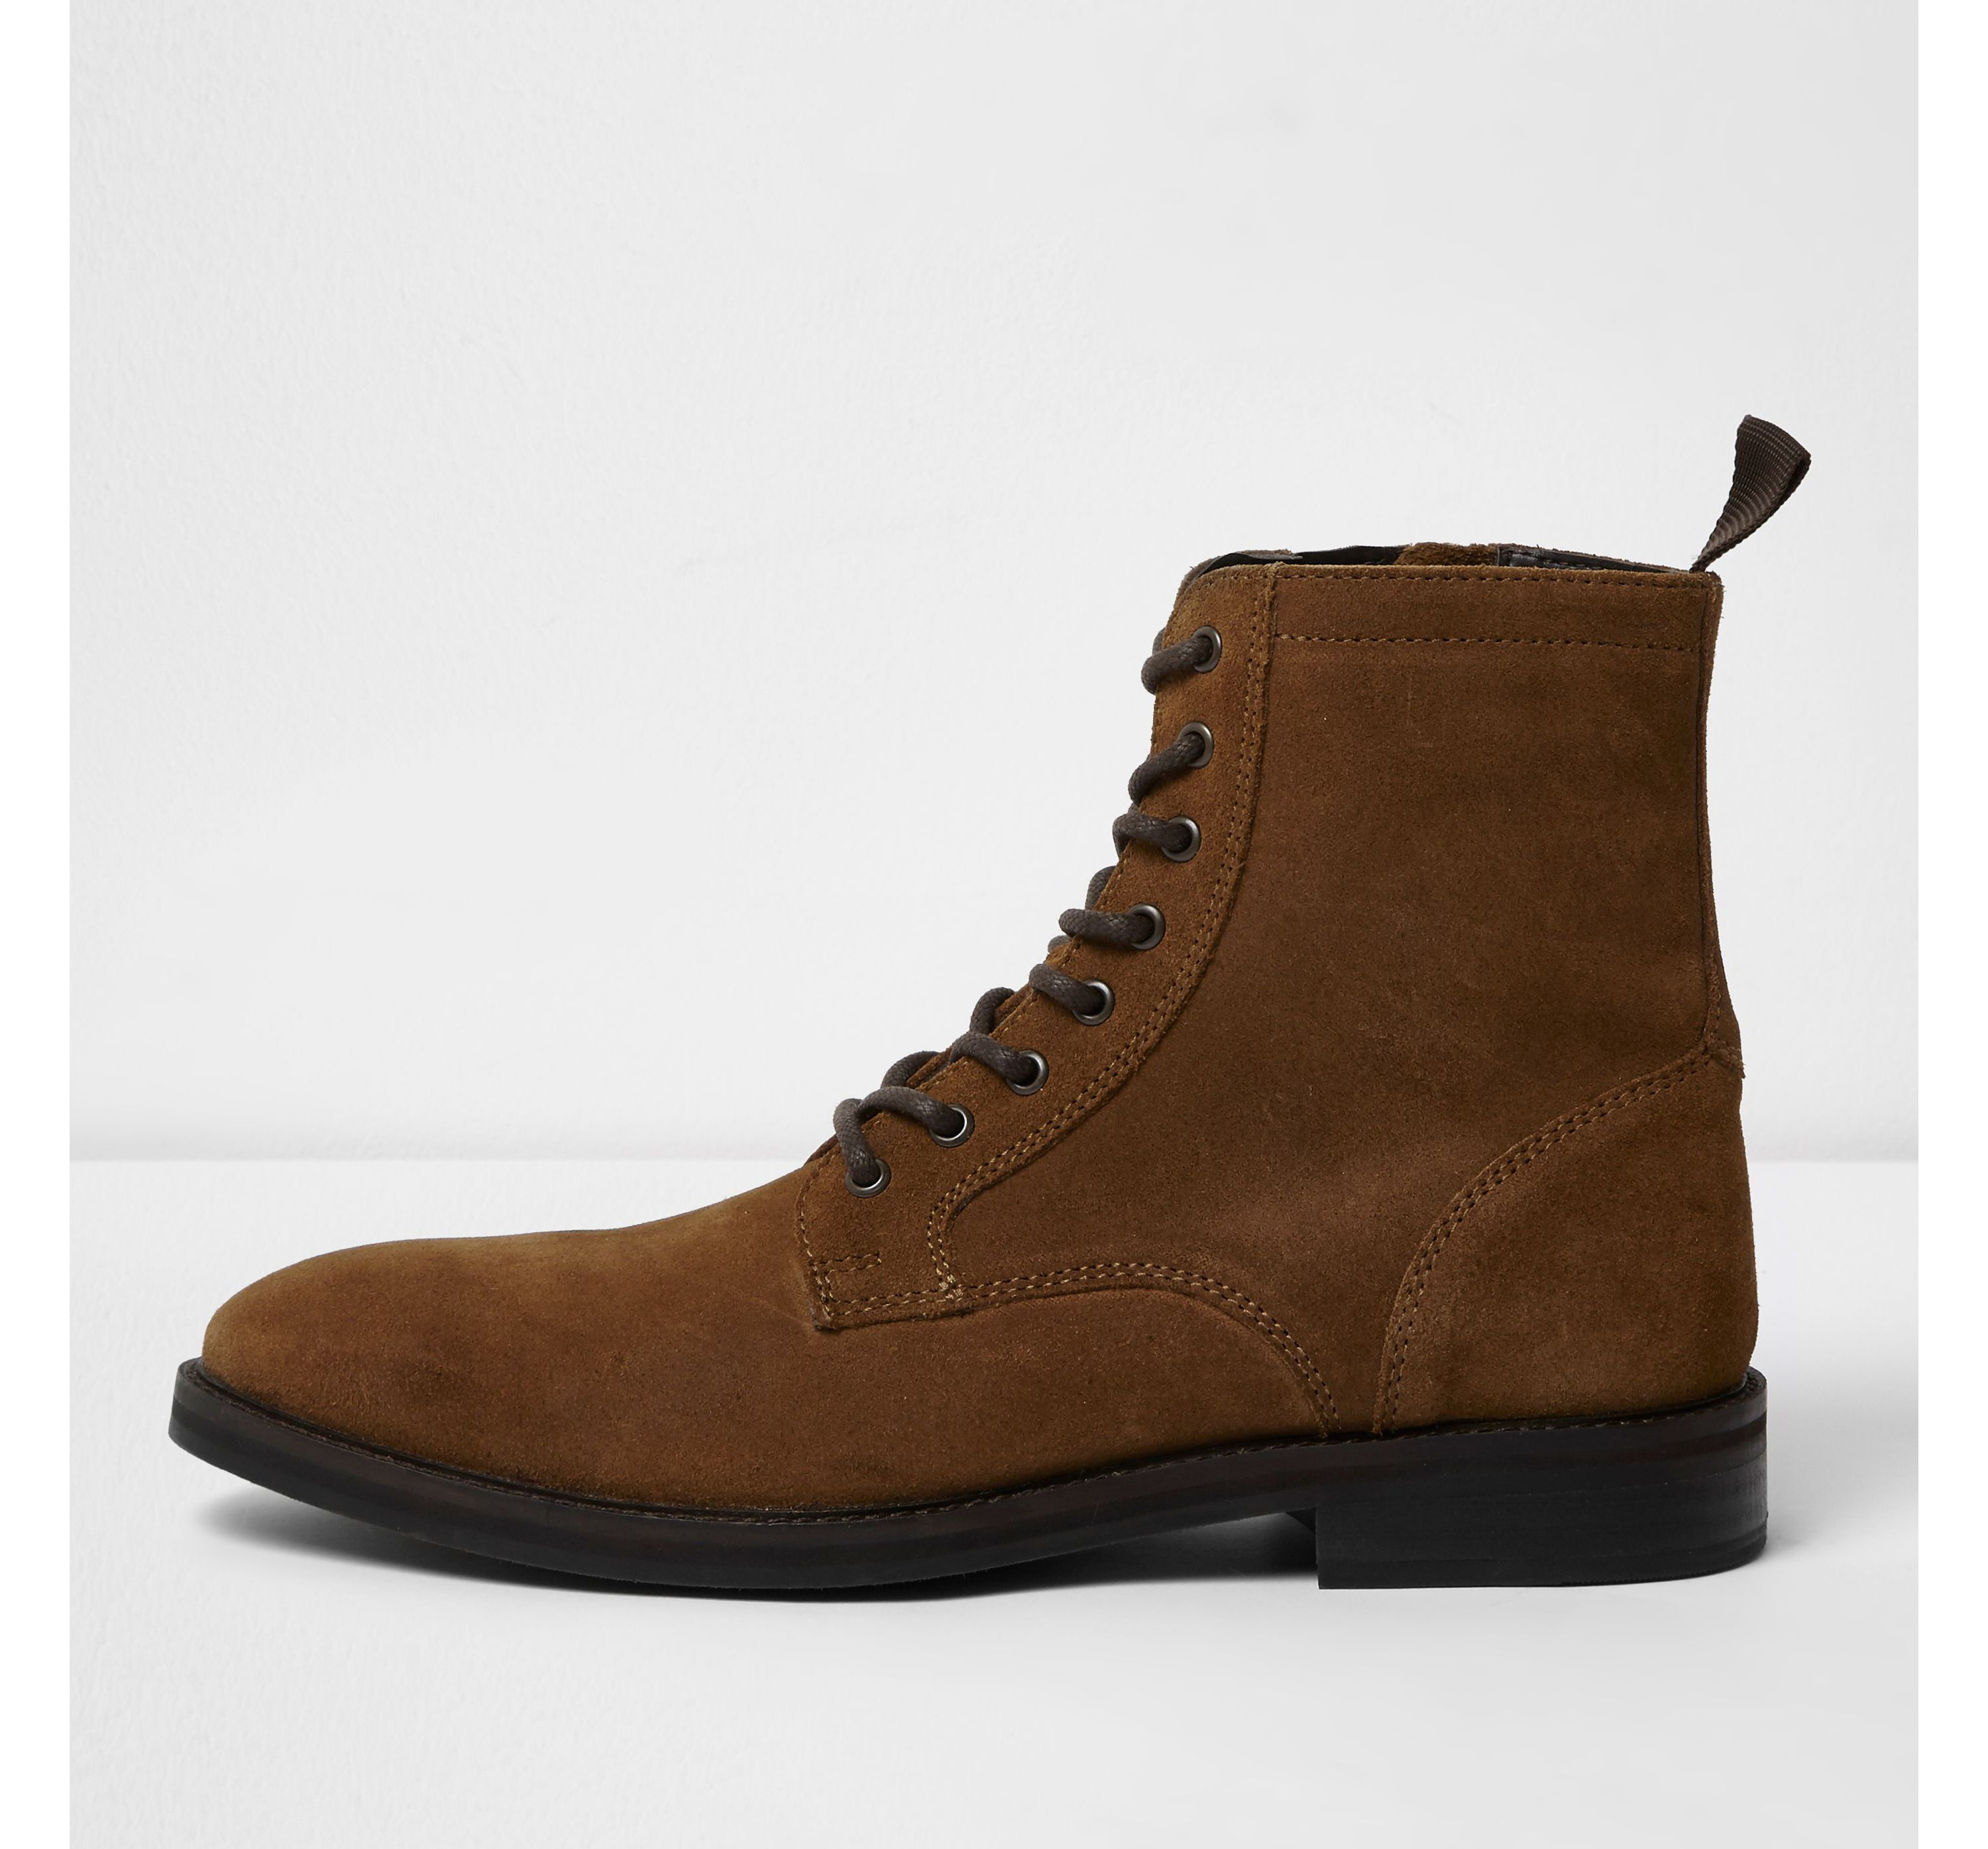 Mens Tan suede lace-up boots by River